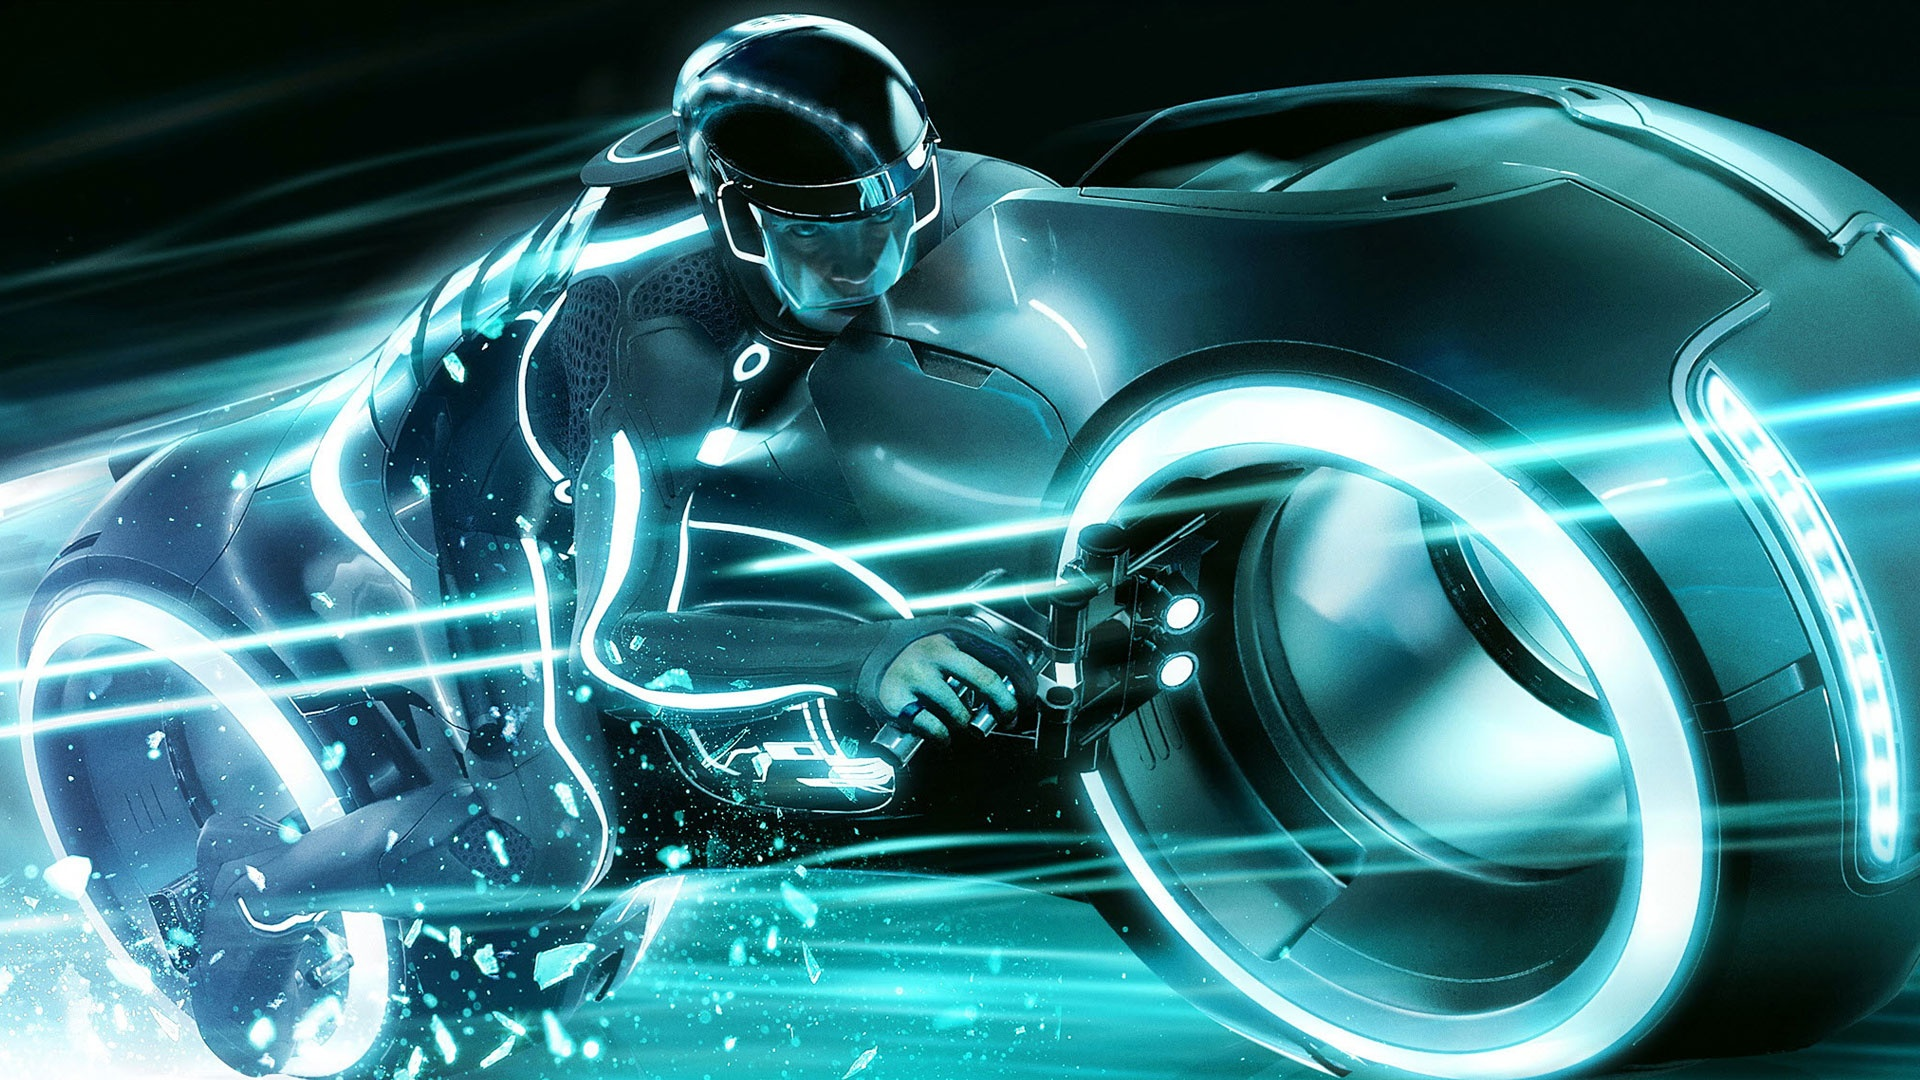 Tron Legacy Hd 1080p Wallpapers In Jpg Format For Free Download